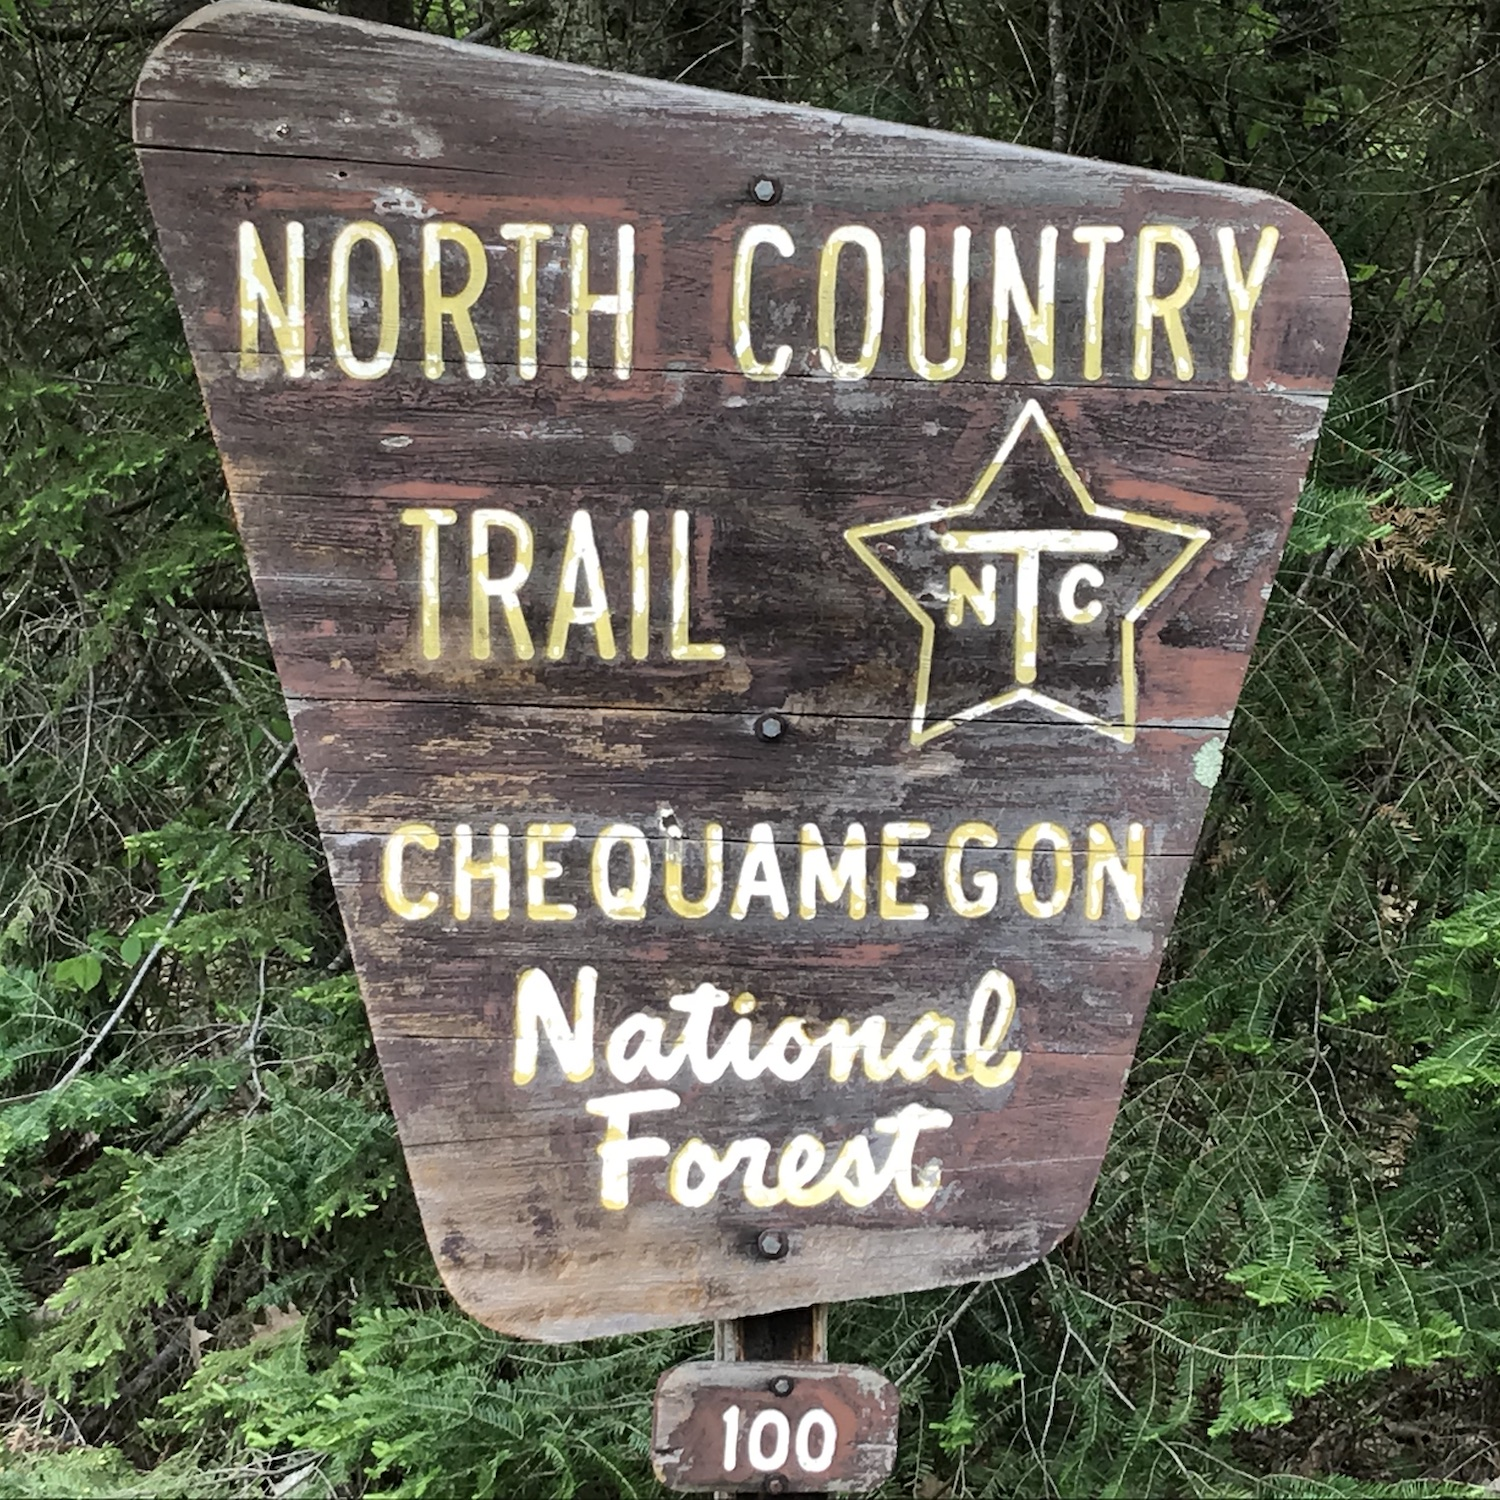 North Country Trail sign.jpeg